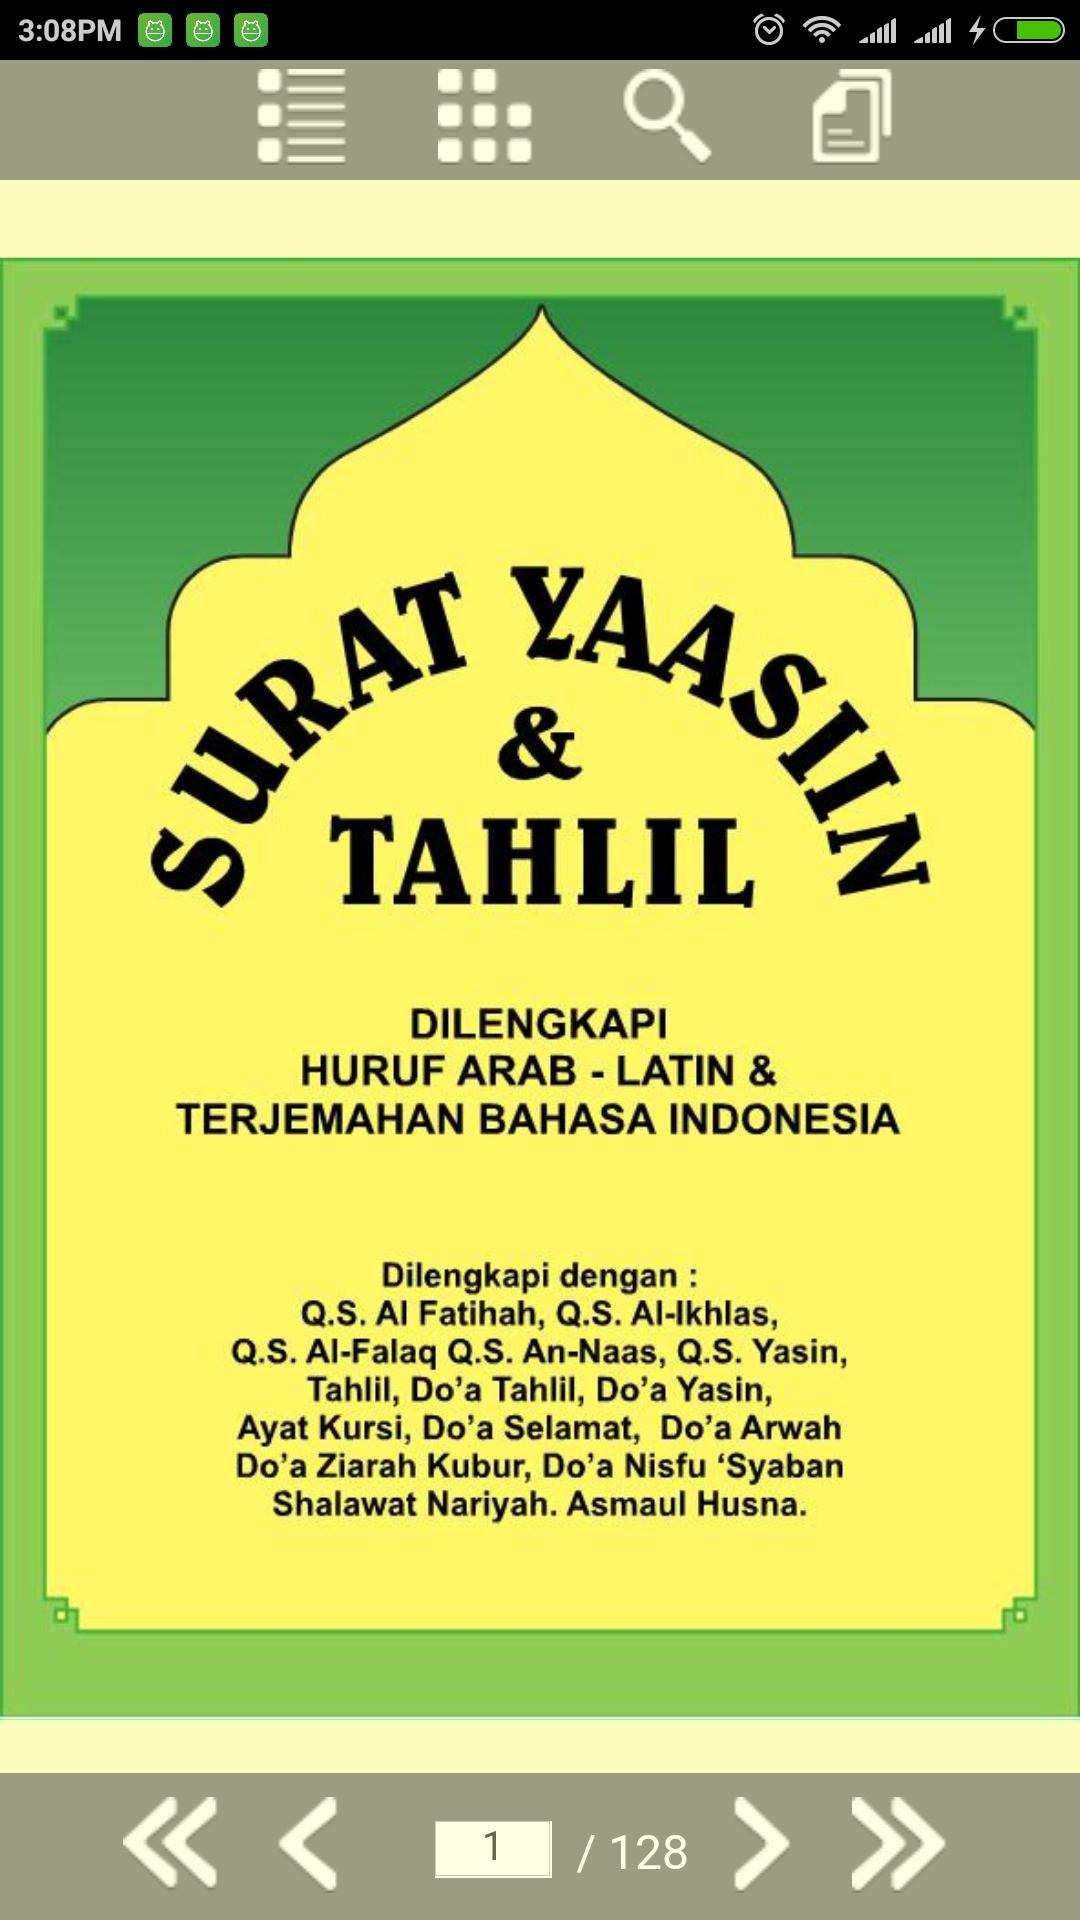 Surat Yasin Tahlil Dan Doa Lengkap For Android Apk Download